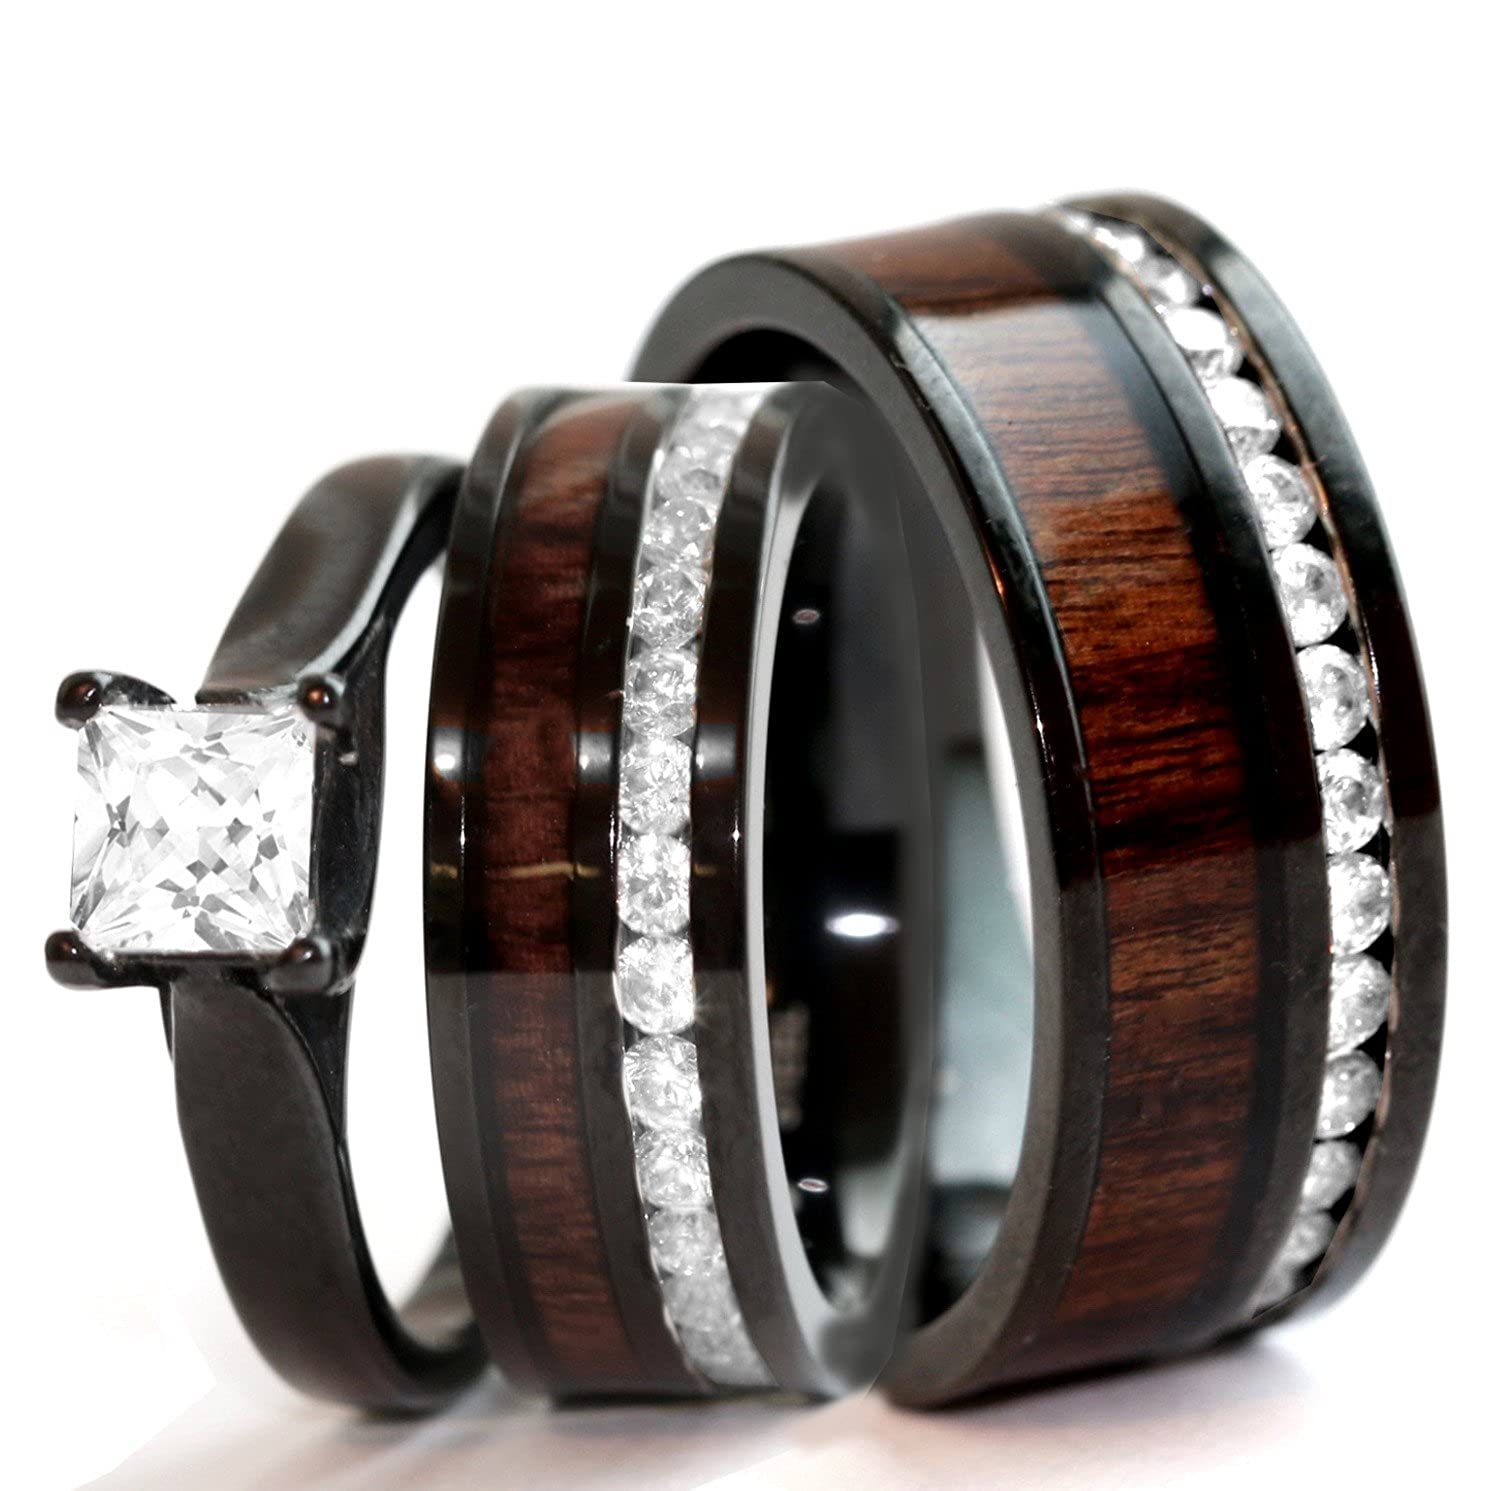 KingswayJewelry His /& Hers Natural Koa Wood CZ 3 pcs Surgical Black Stainless Steel Engagement Wedding Rings Set KJ-481